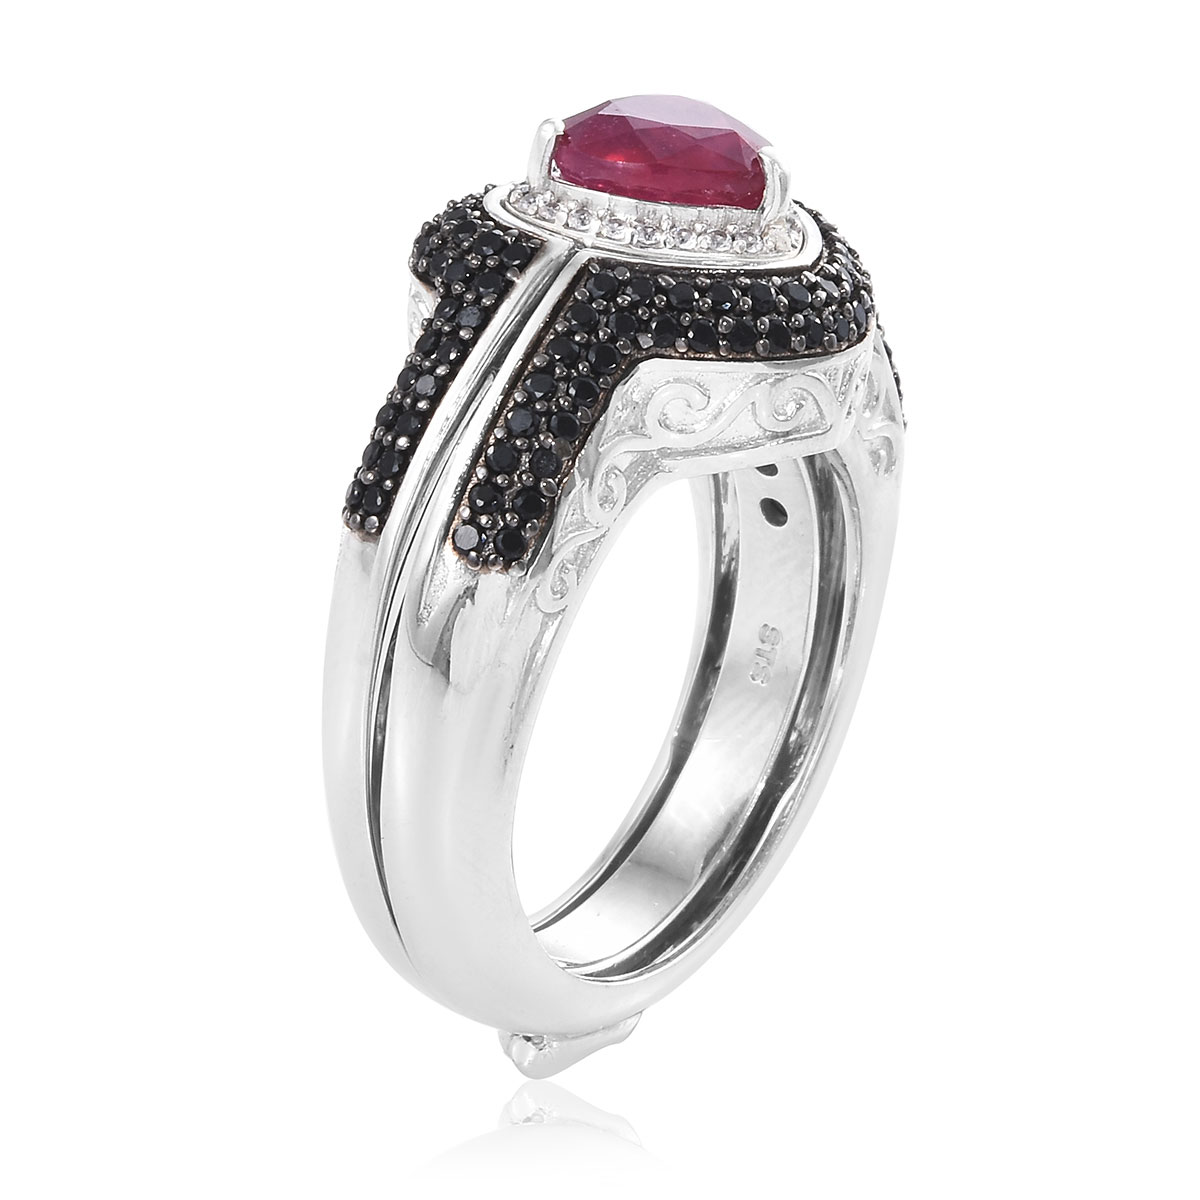 Niassa Ruby, Multi Gemstone Caged Ring in Rhodium & Platinum Over Sterling Silver (Size 11.0) (Avg. 16.2 g) 5.00 ctw